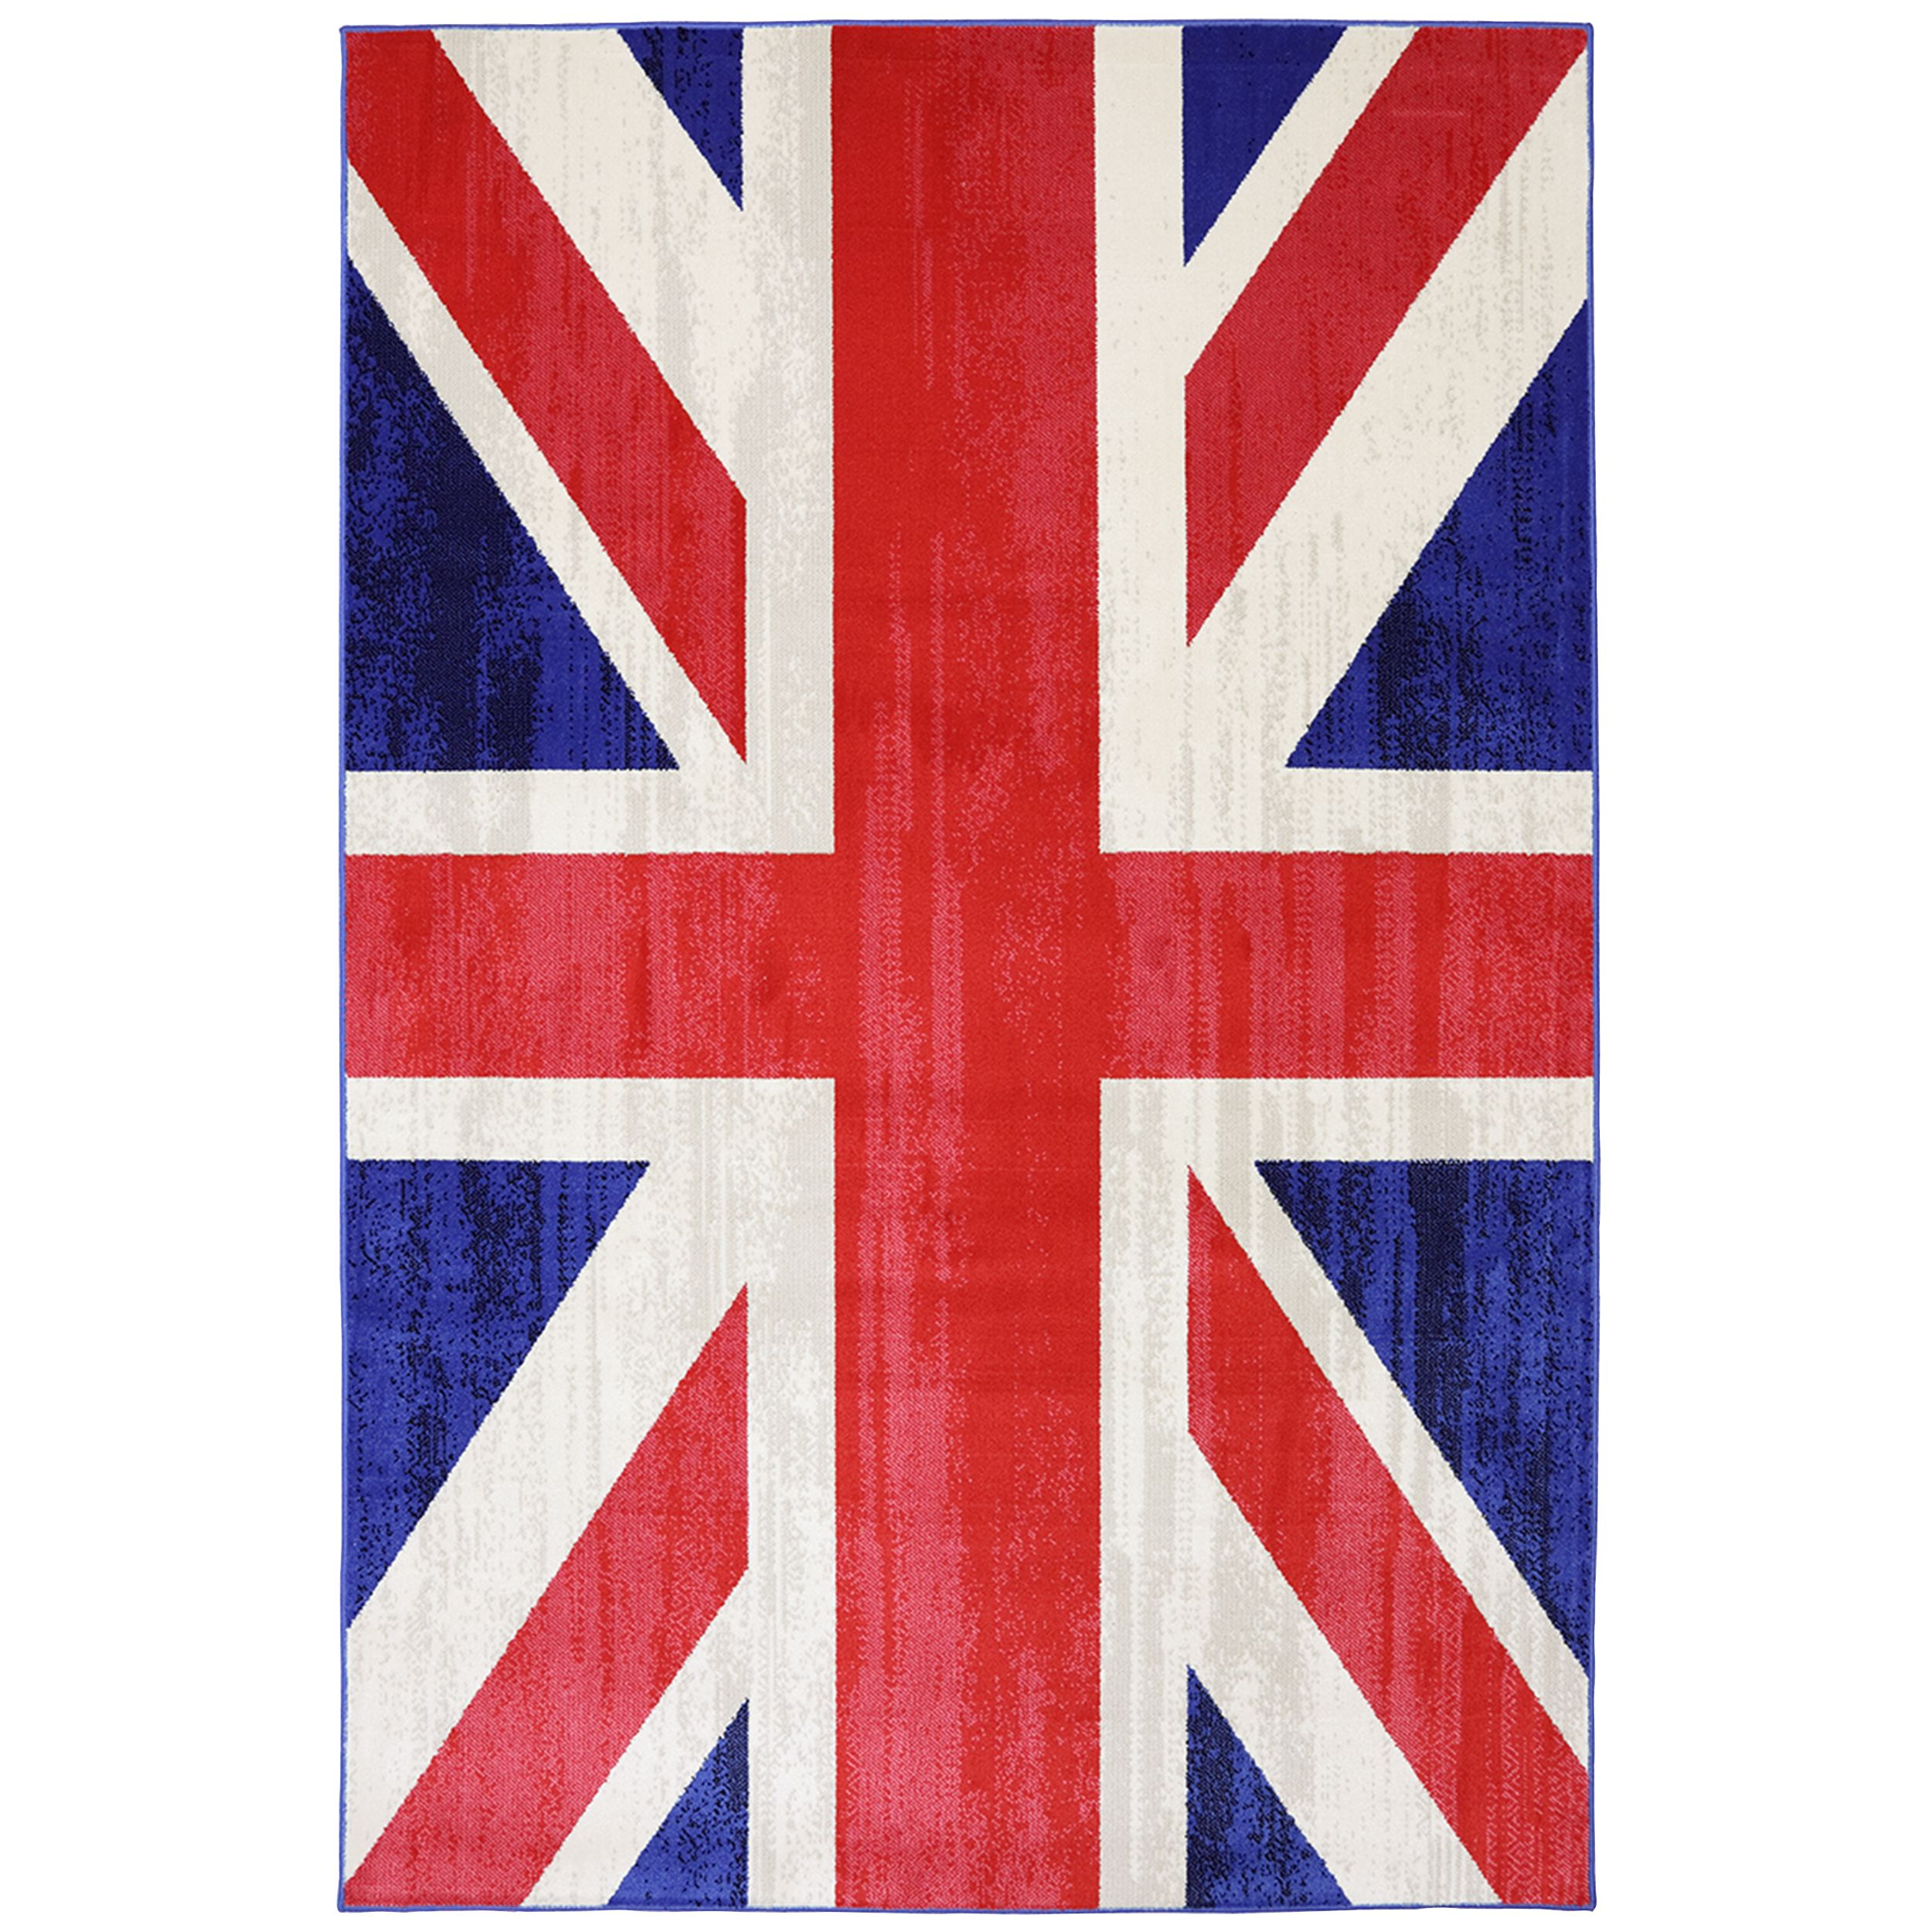 Celebrate Your Inner Patriot By Adding This Union Jack Rug